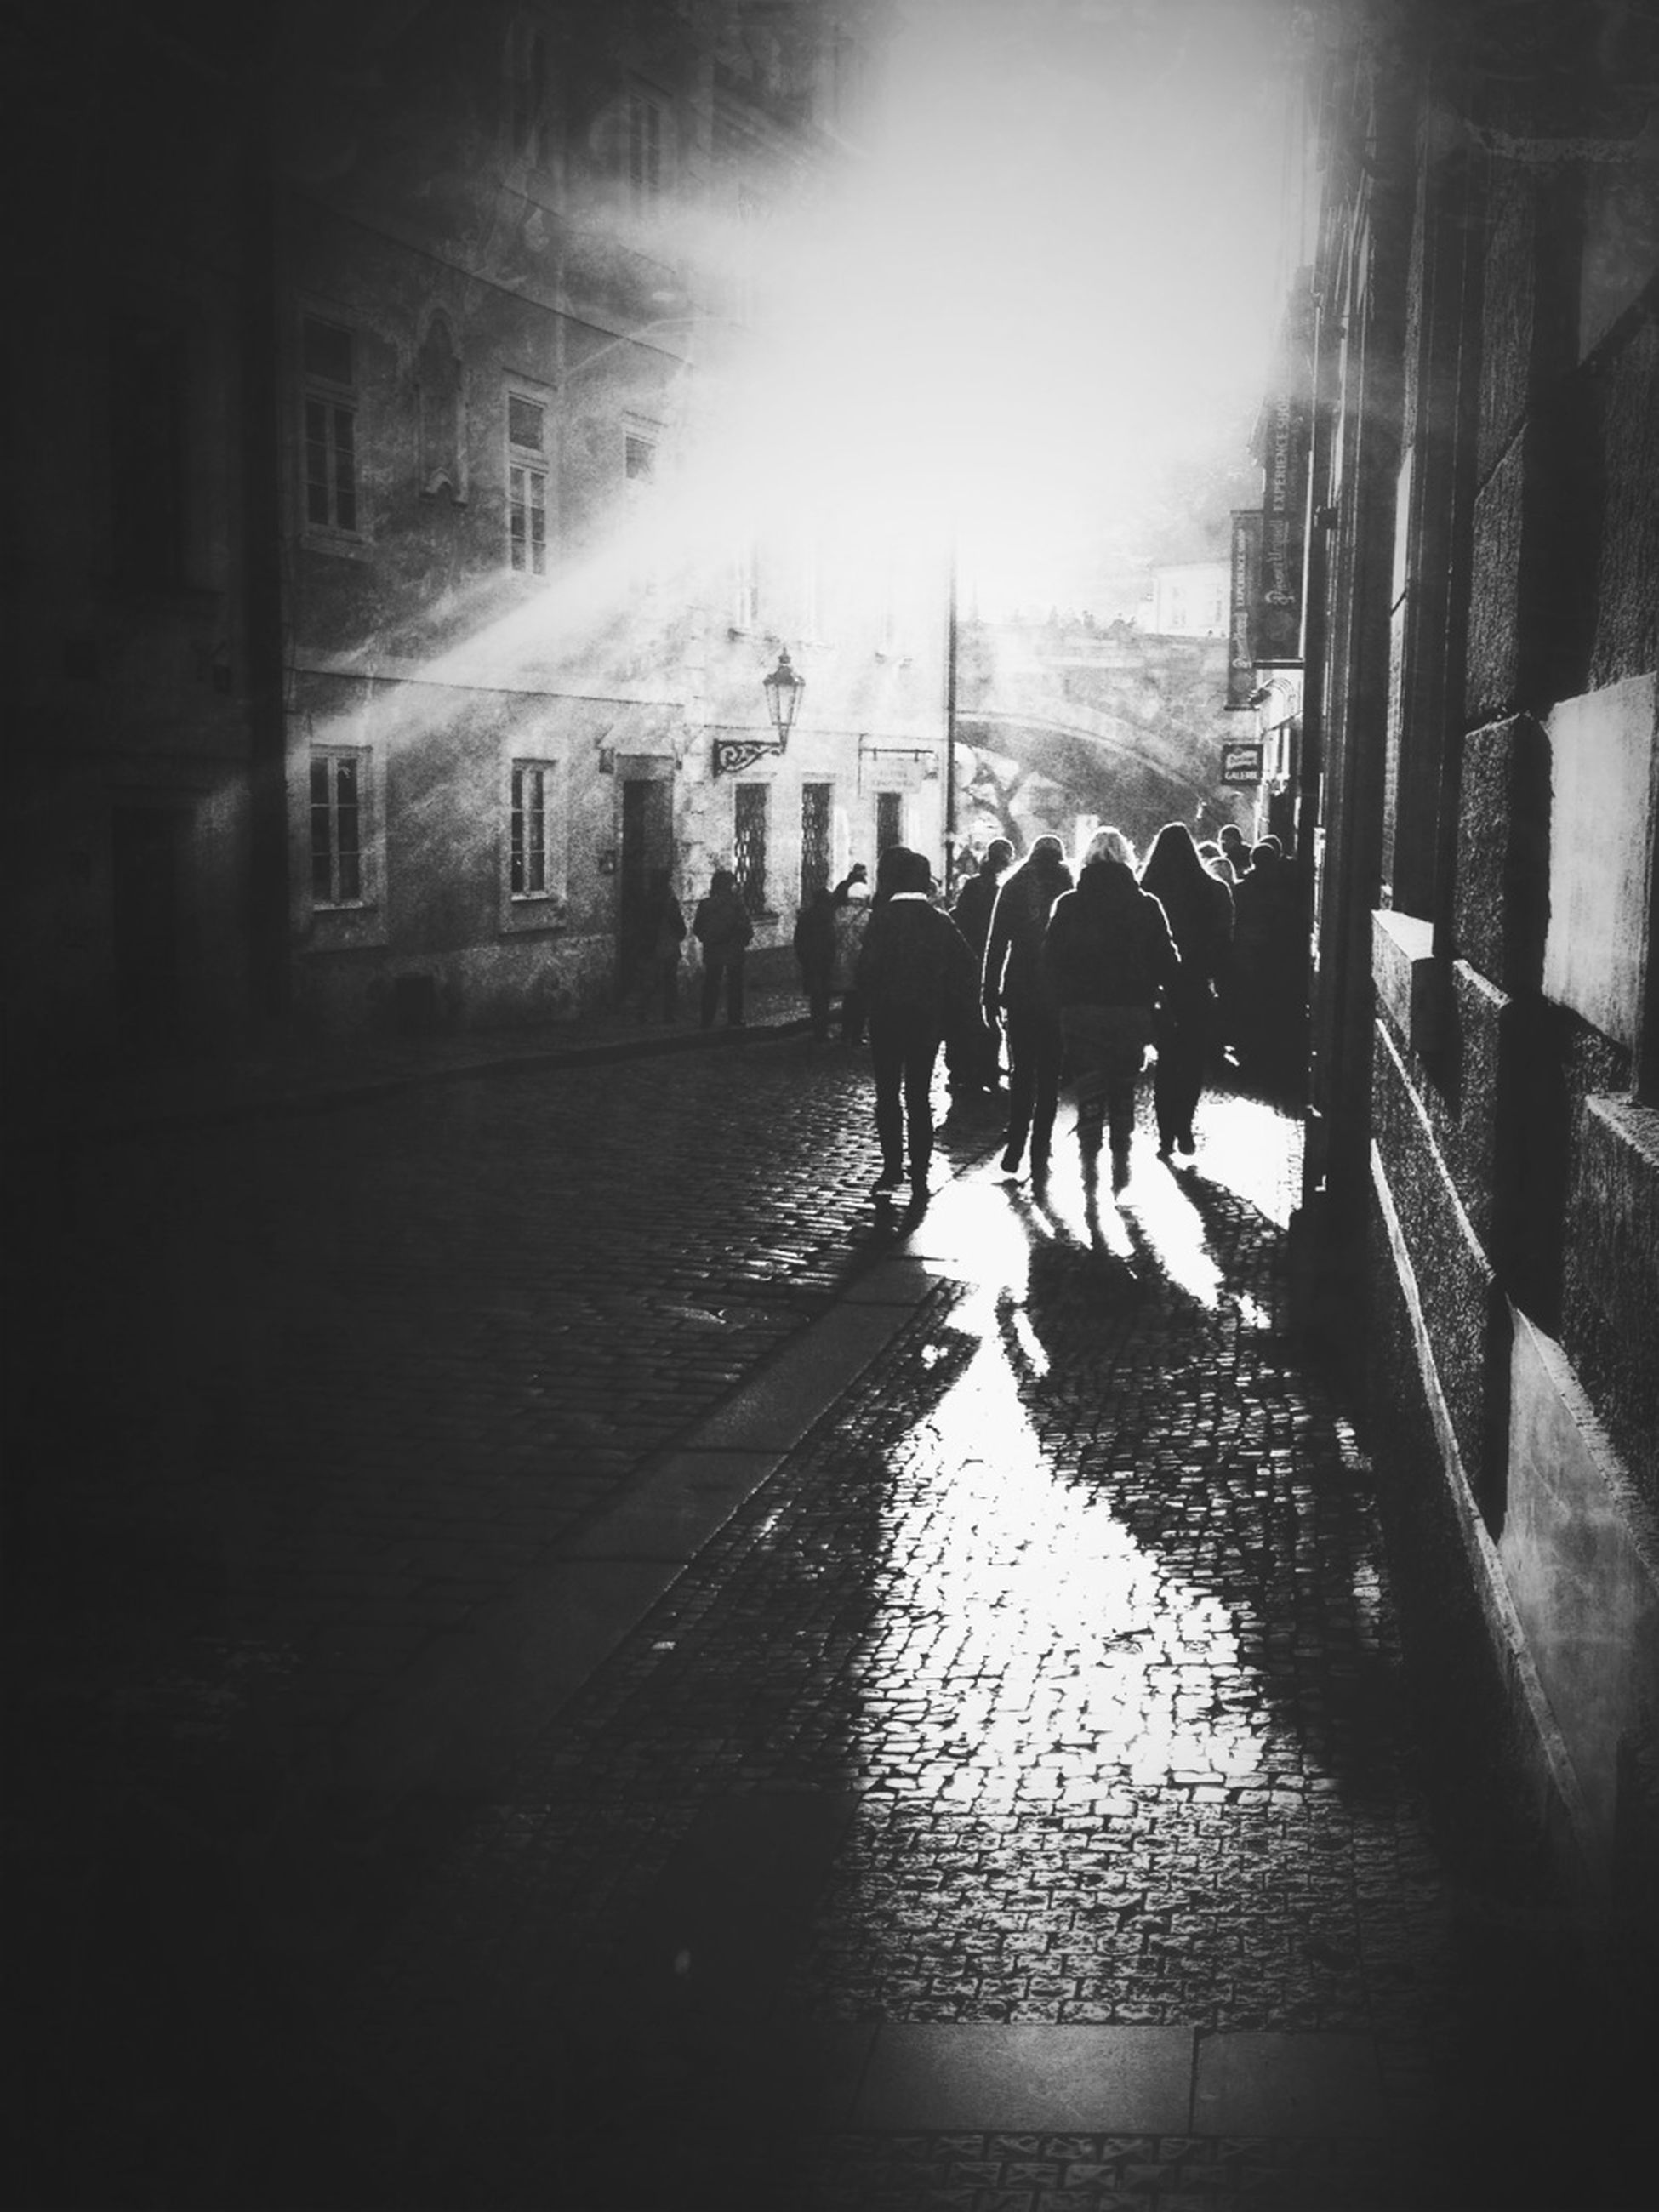 building exterior, men, built structure, architecture, lifestyles, walking, person, street, large group of people, city, leisure activity, medium group of people, city life, silhouette, mixed age range, togetherness, full length, sunlight, sidewalk